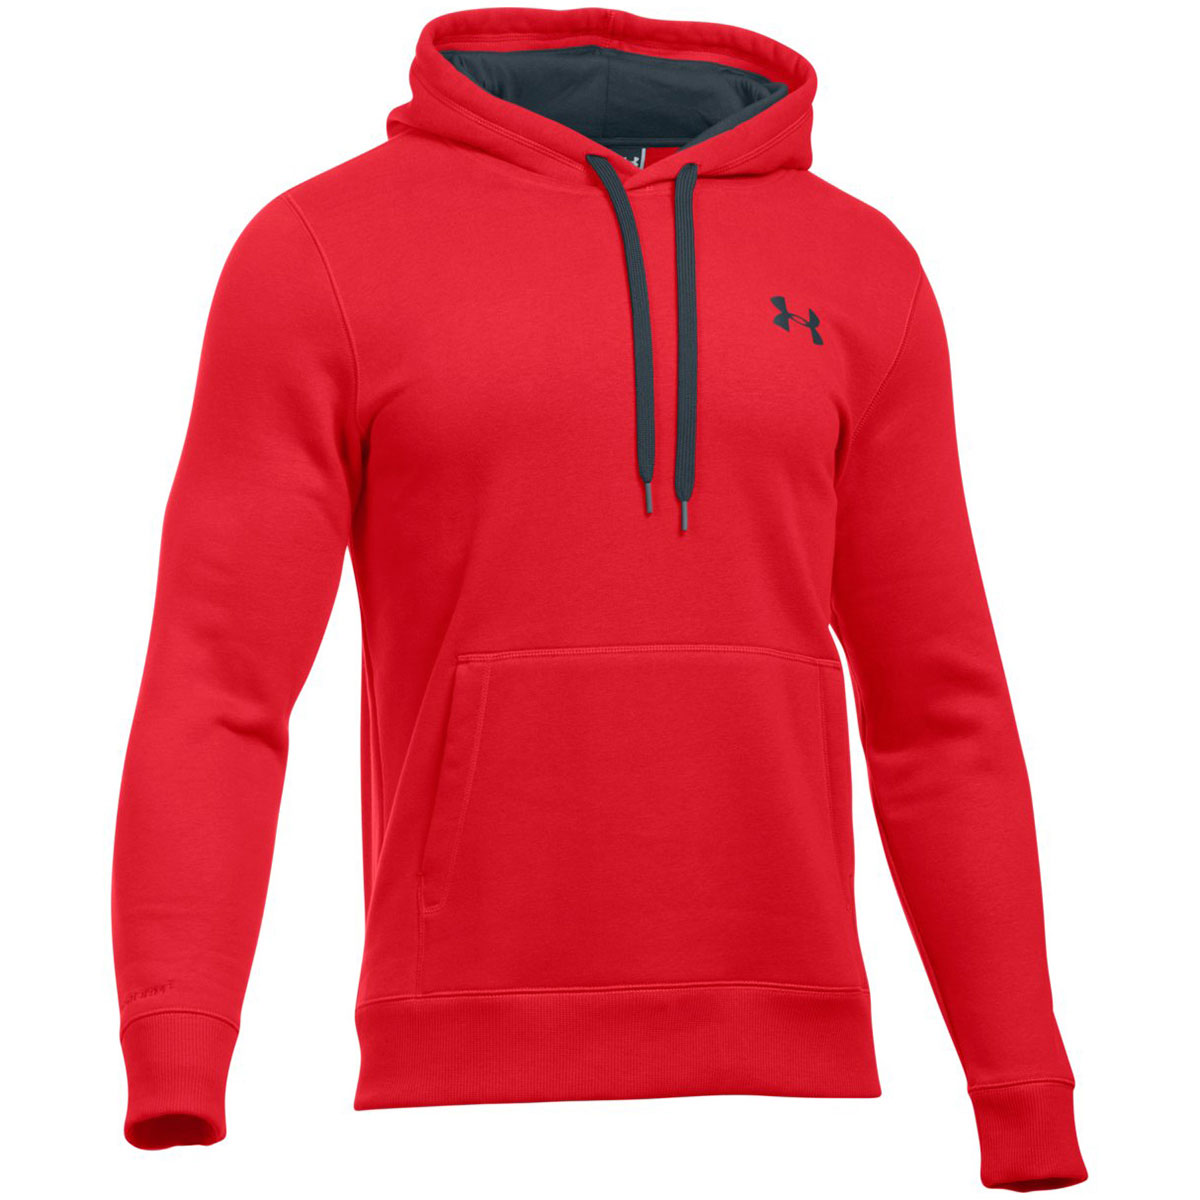 241d0dd669e7 cheap red under armour hoodie